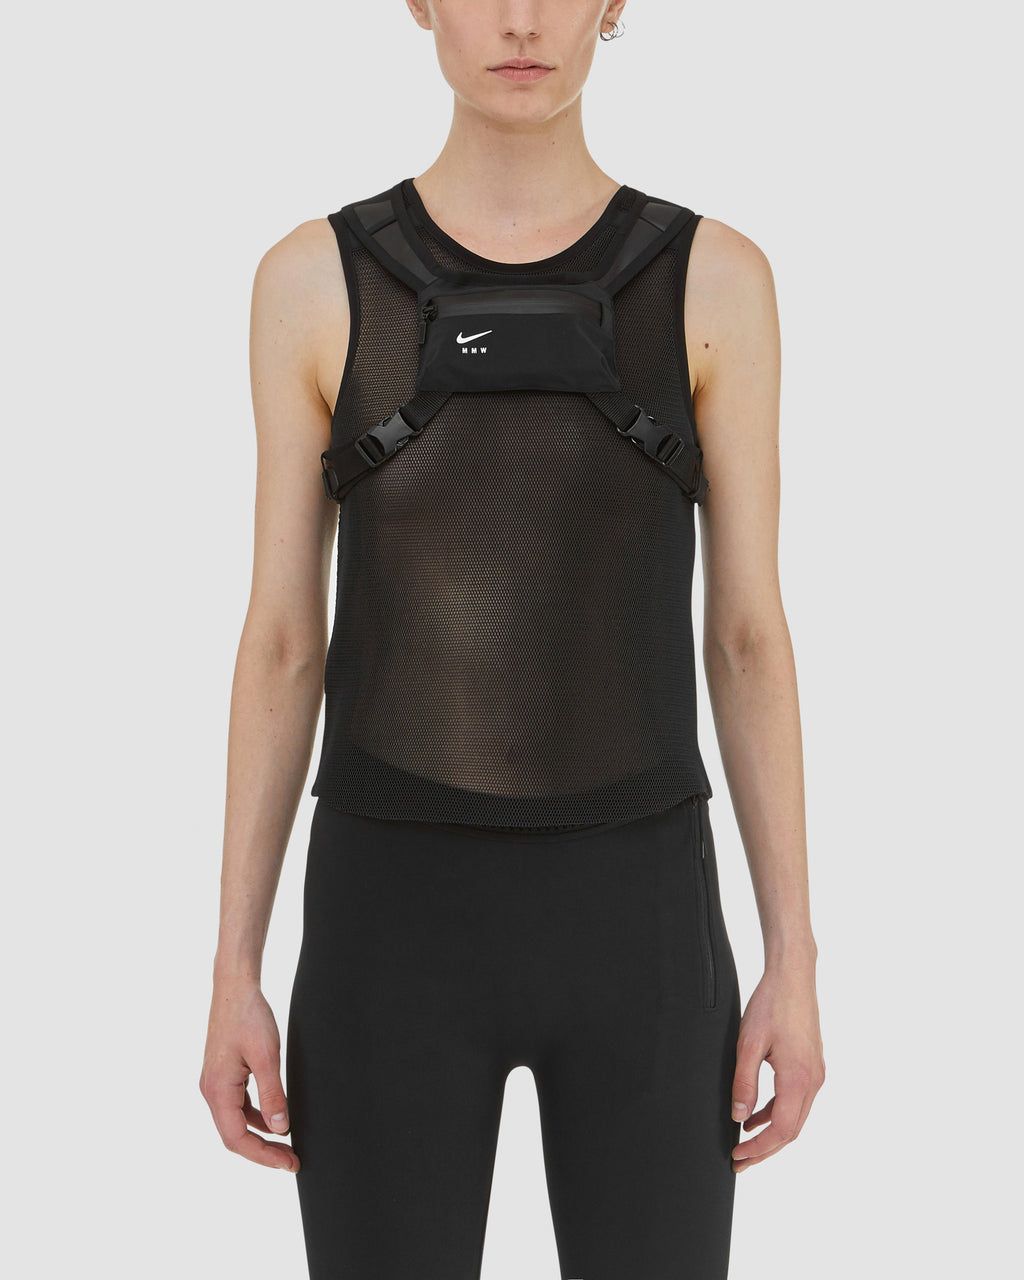 NIKE x MMW Mesh Shirt with Chest Pouch